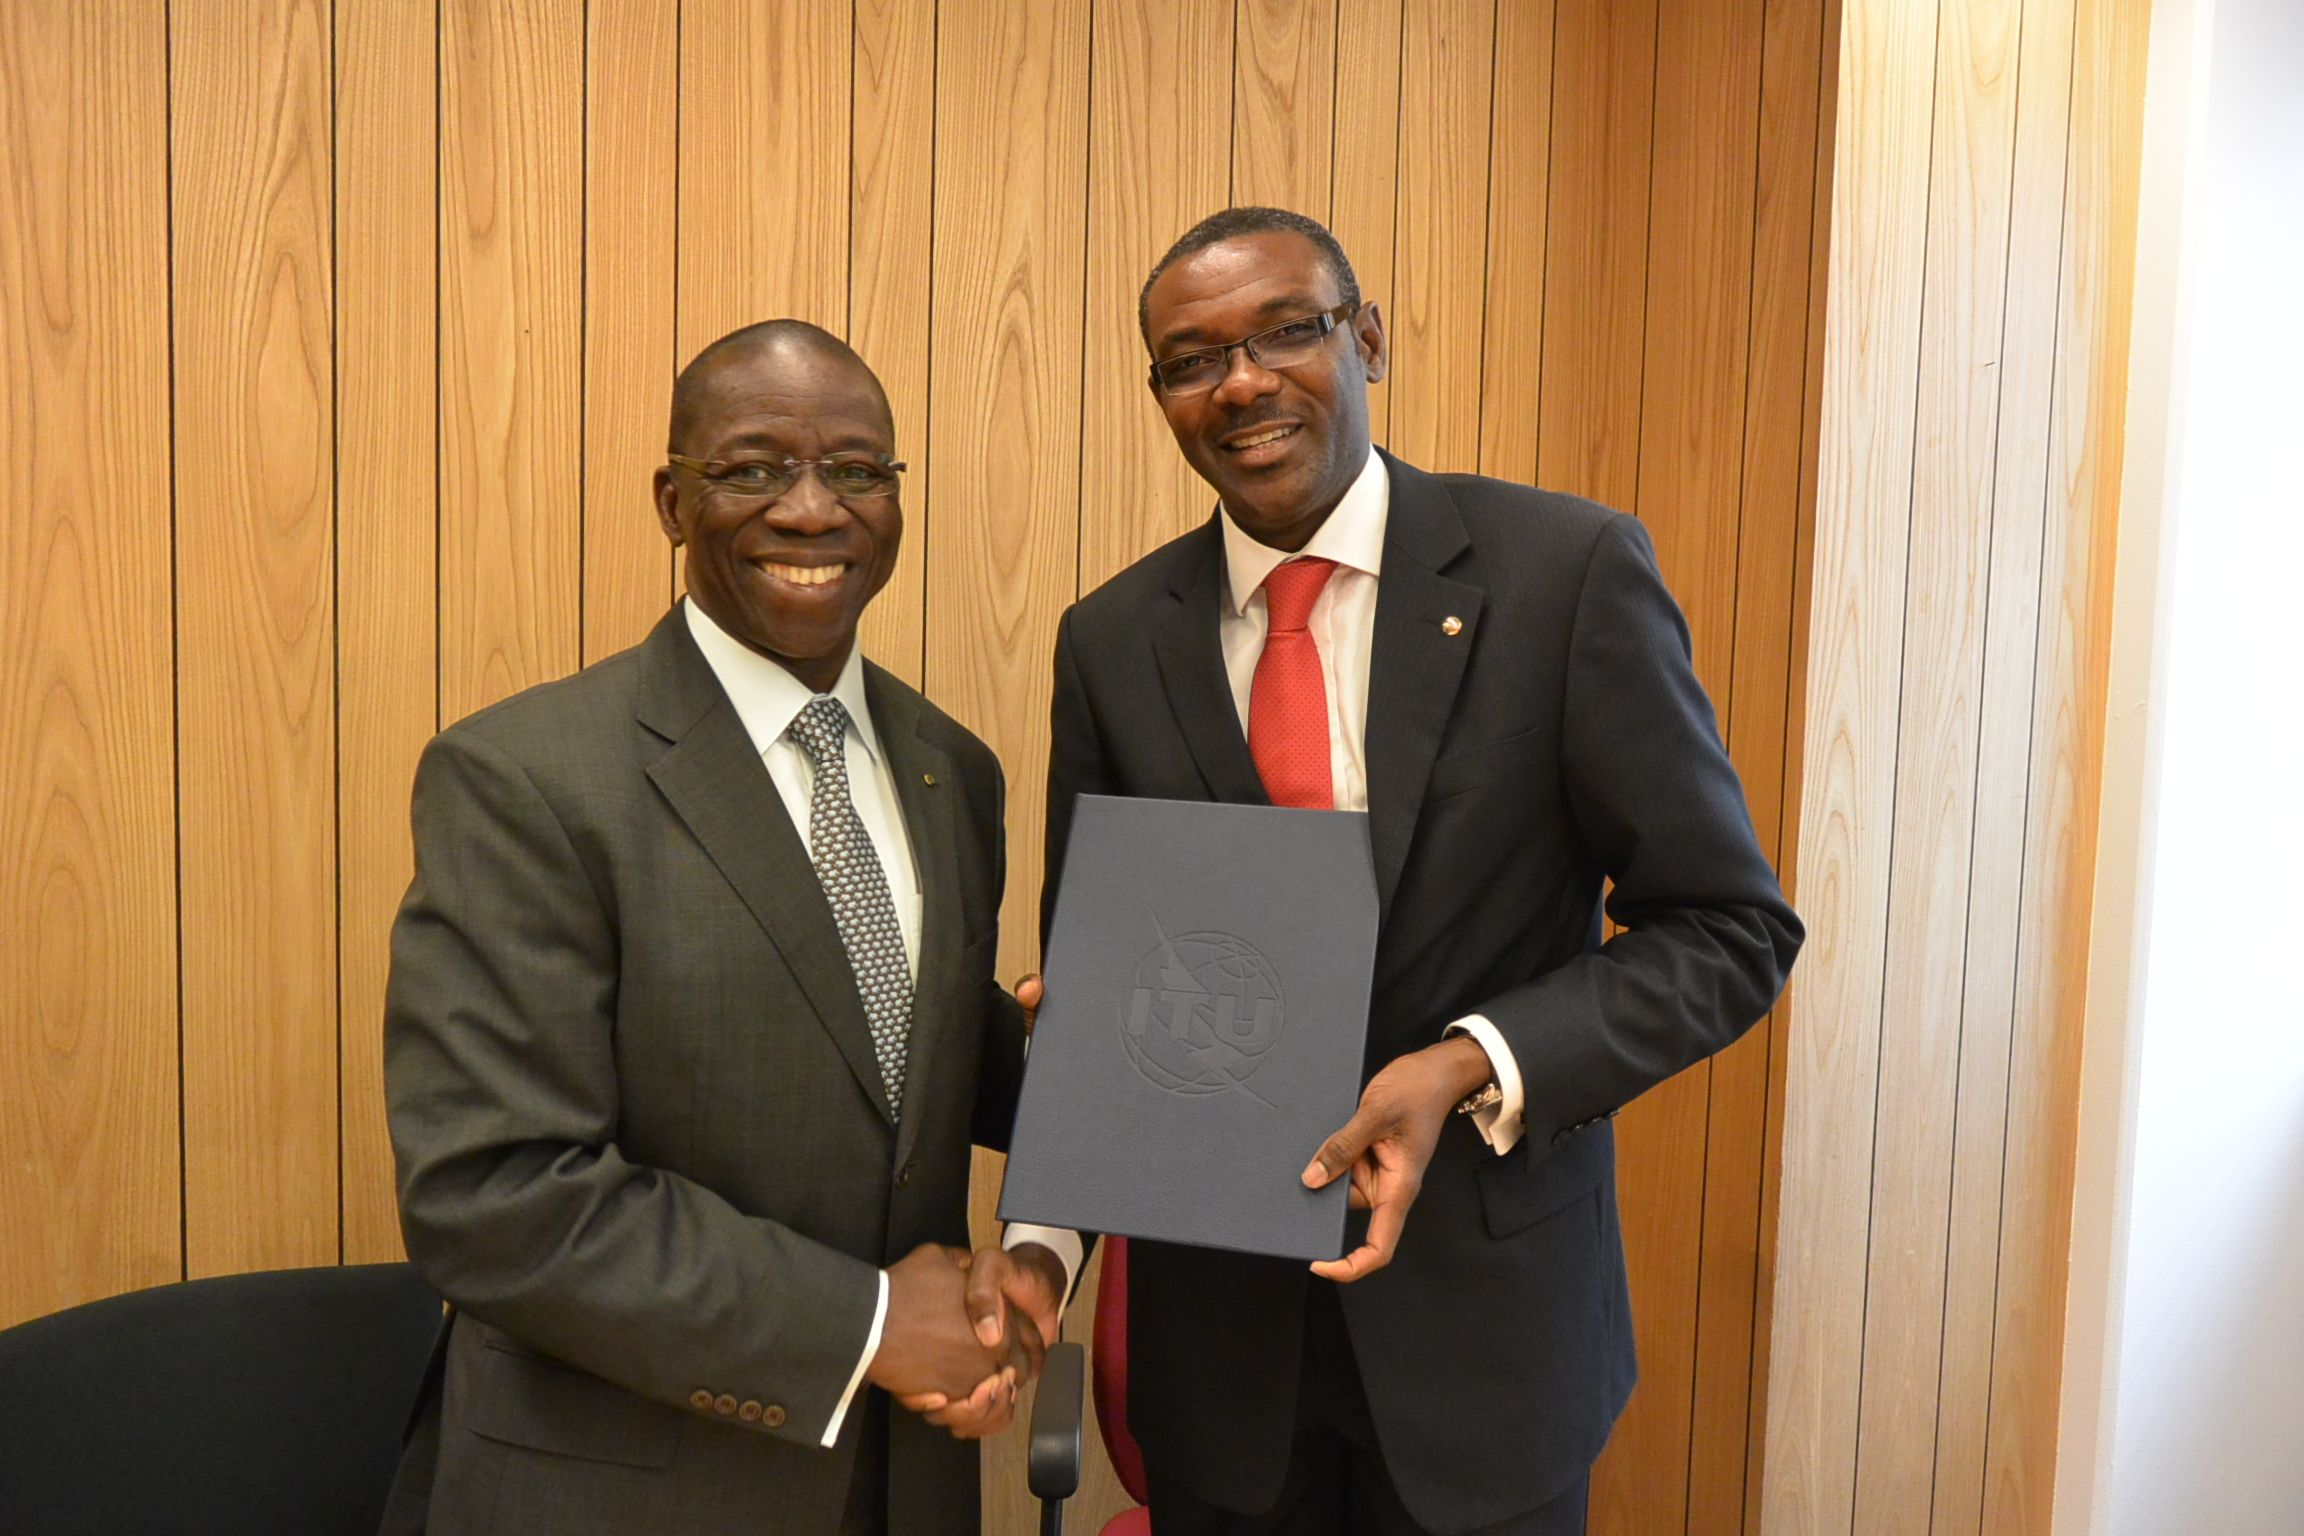 Expanding the use of IPv6 in African countries: Letter of Intent signed with AFRINIC to strengthen collaborative efforts to promote and support IPv6 deployment throughout Africa